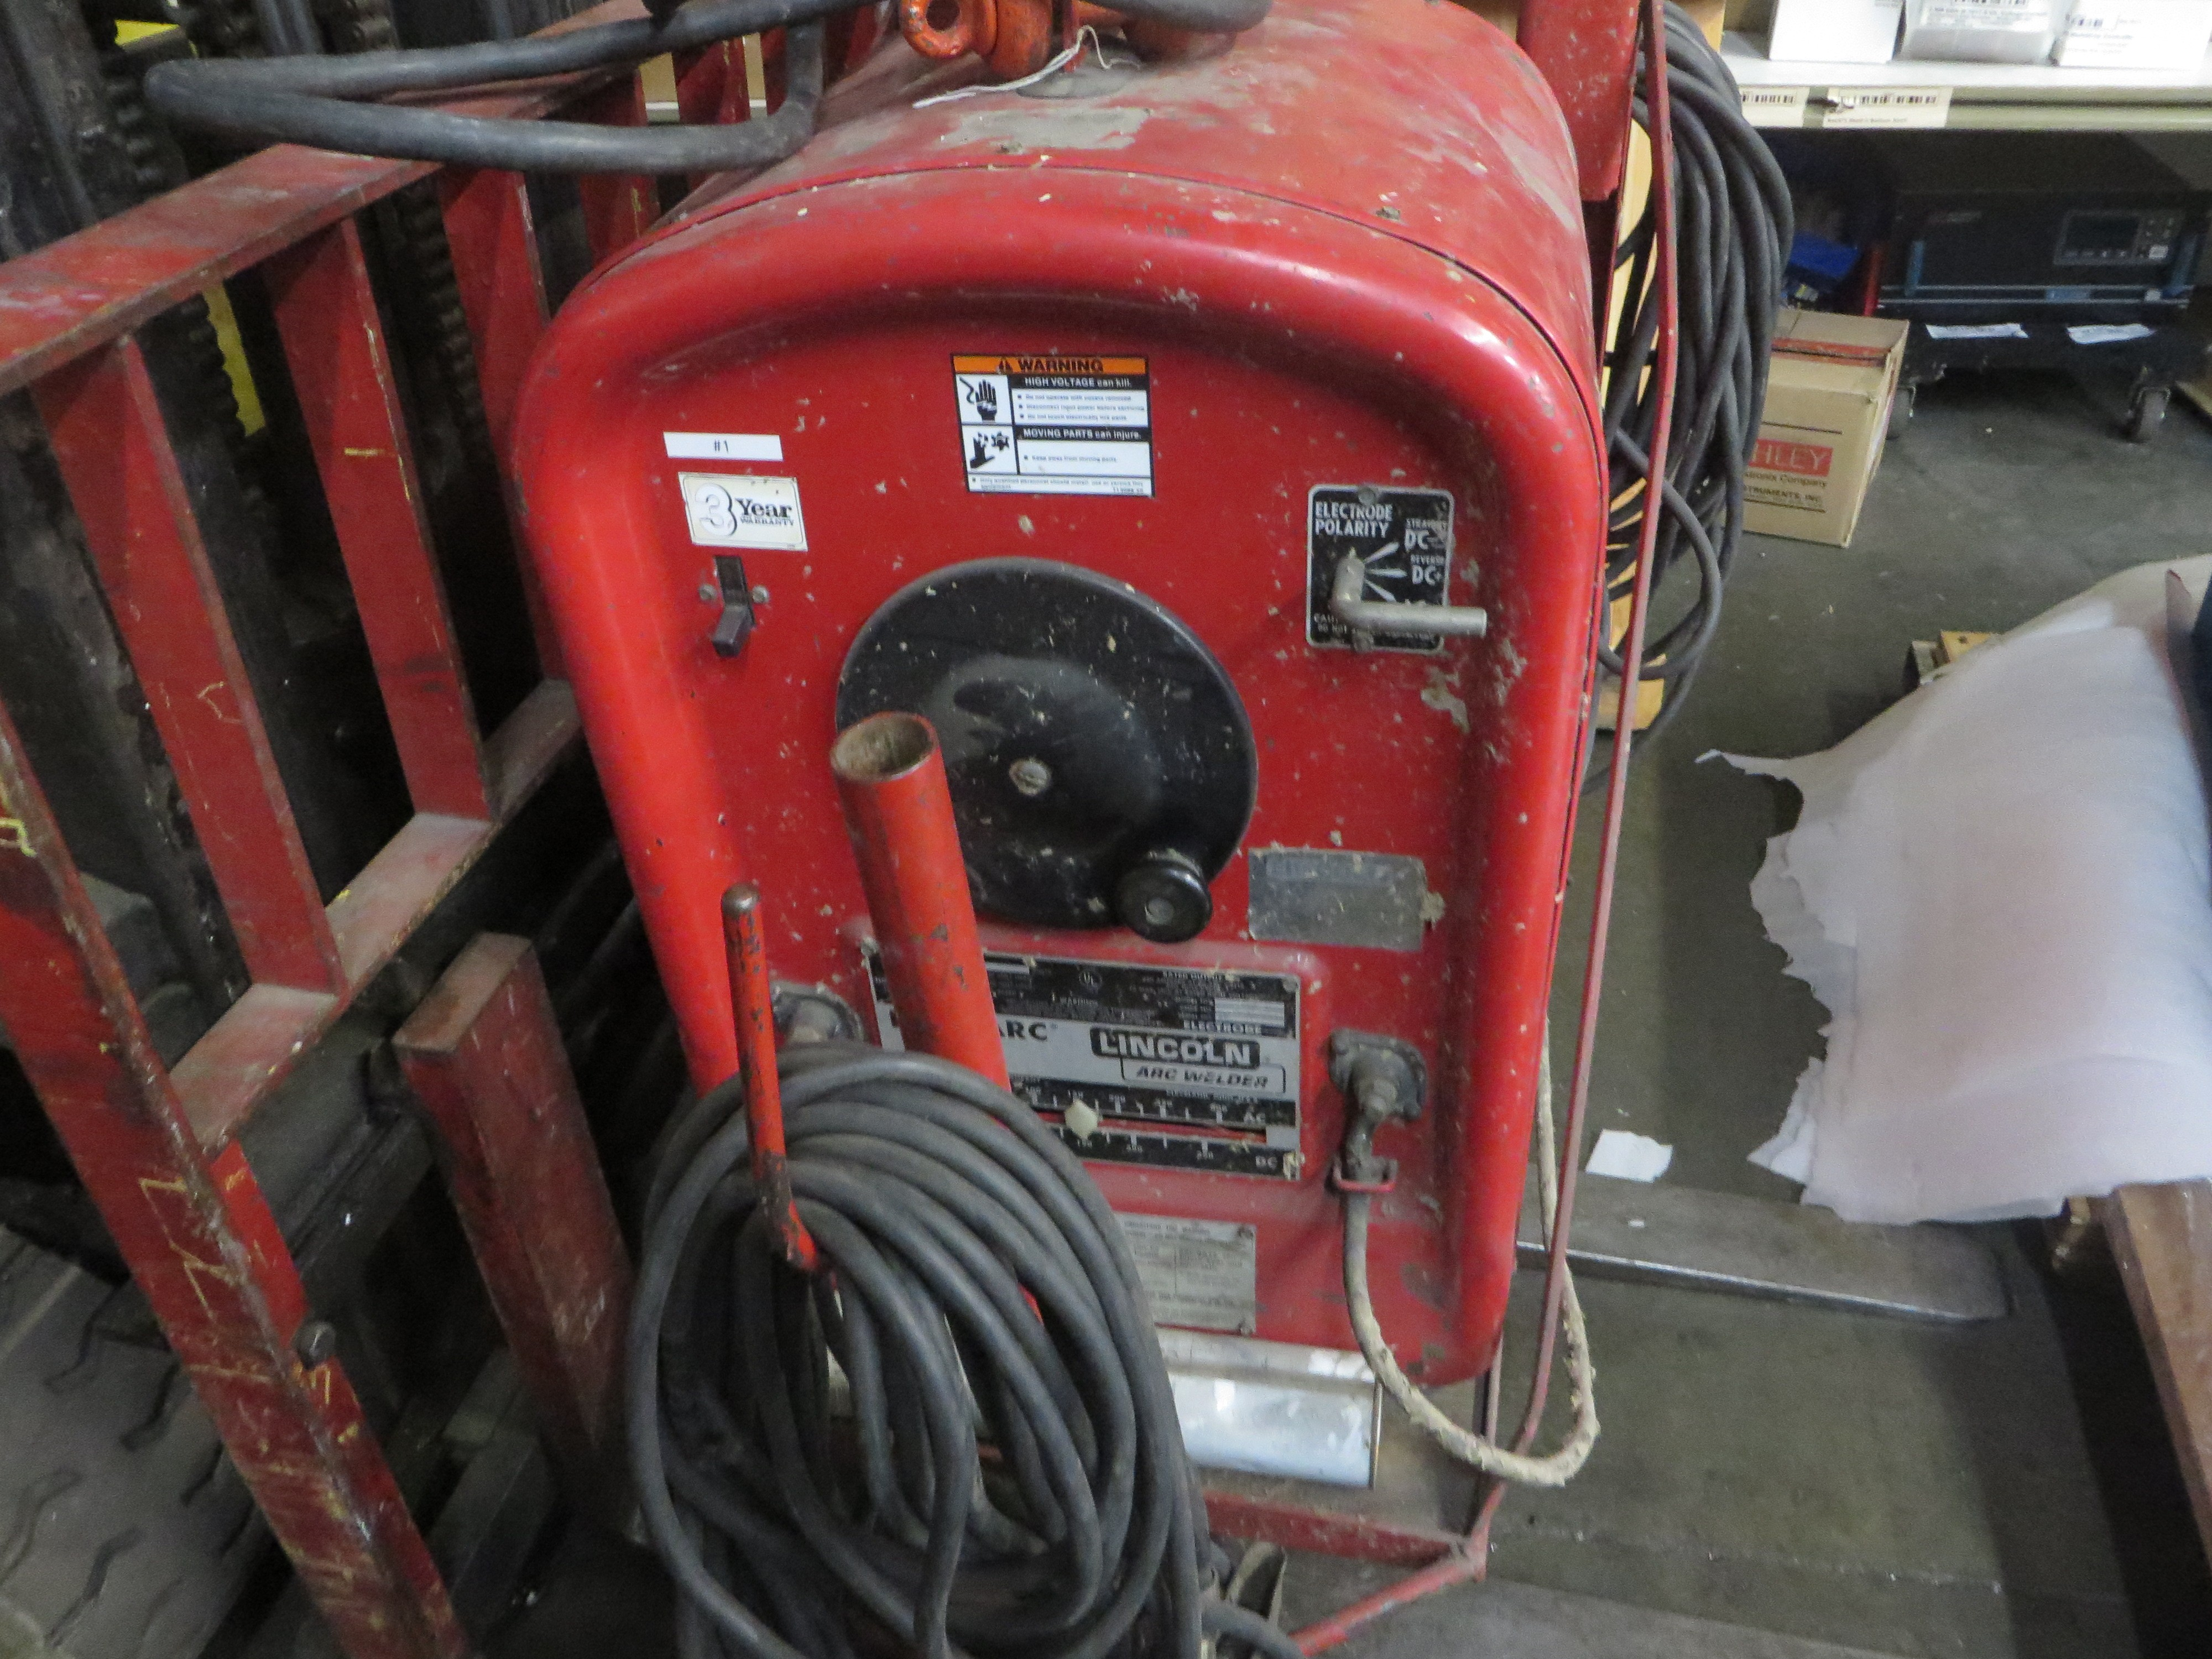 Lincoln 250 Arc Welder with heavy-duty cart and cables